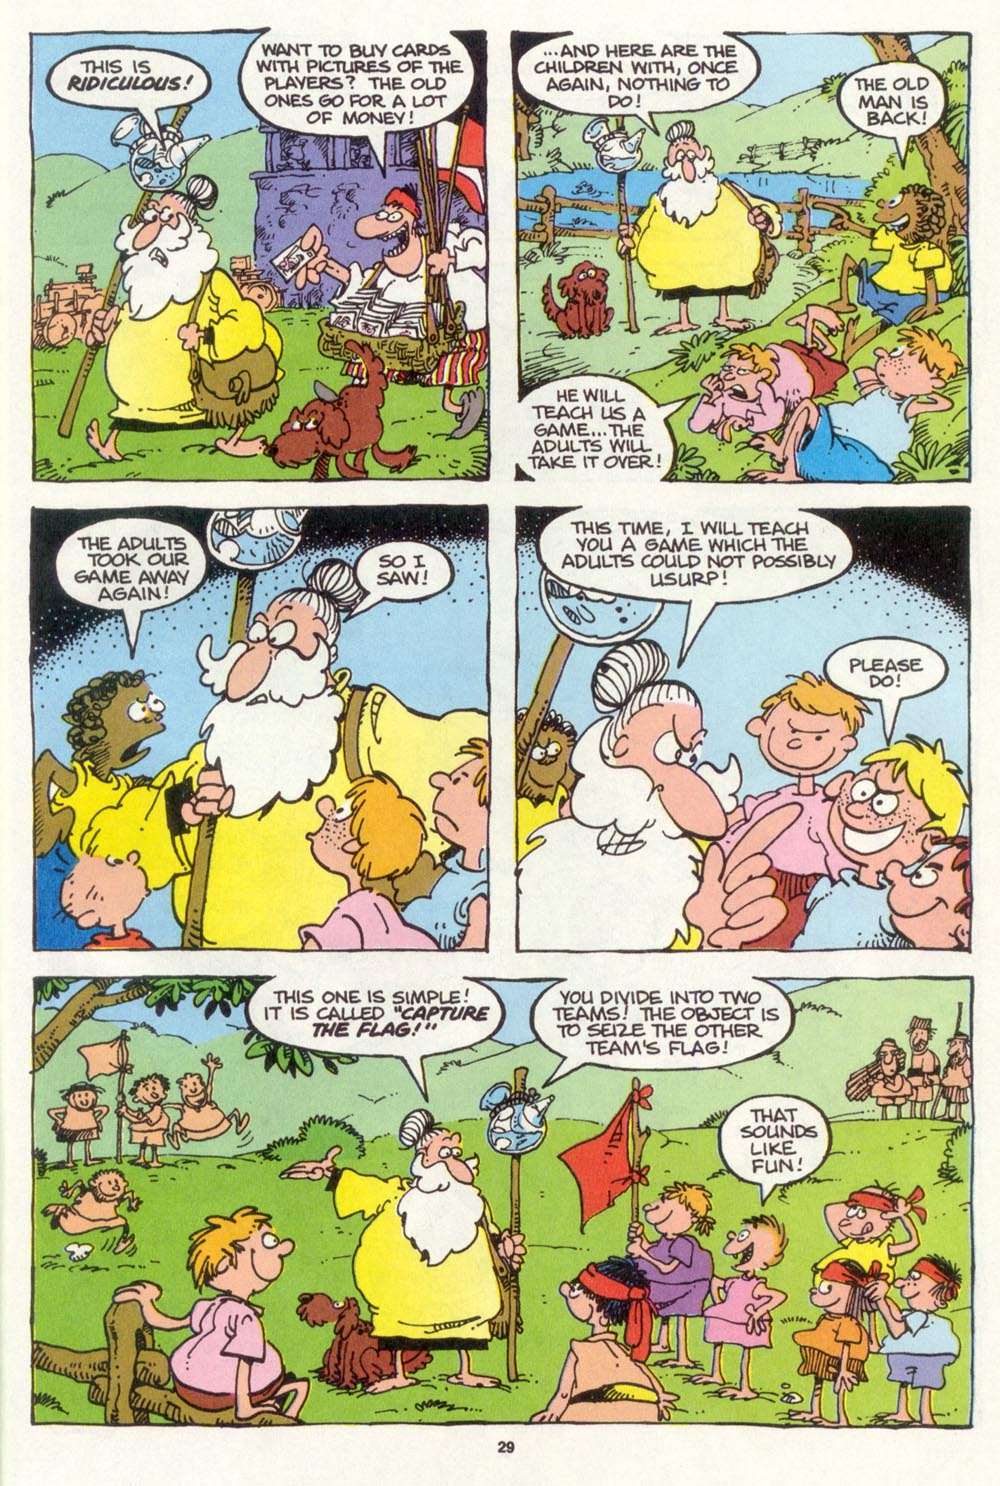 Read online Sergio Aragonés Groo the Wanderer comic -  Issue #105 - 31